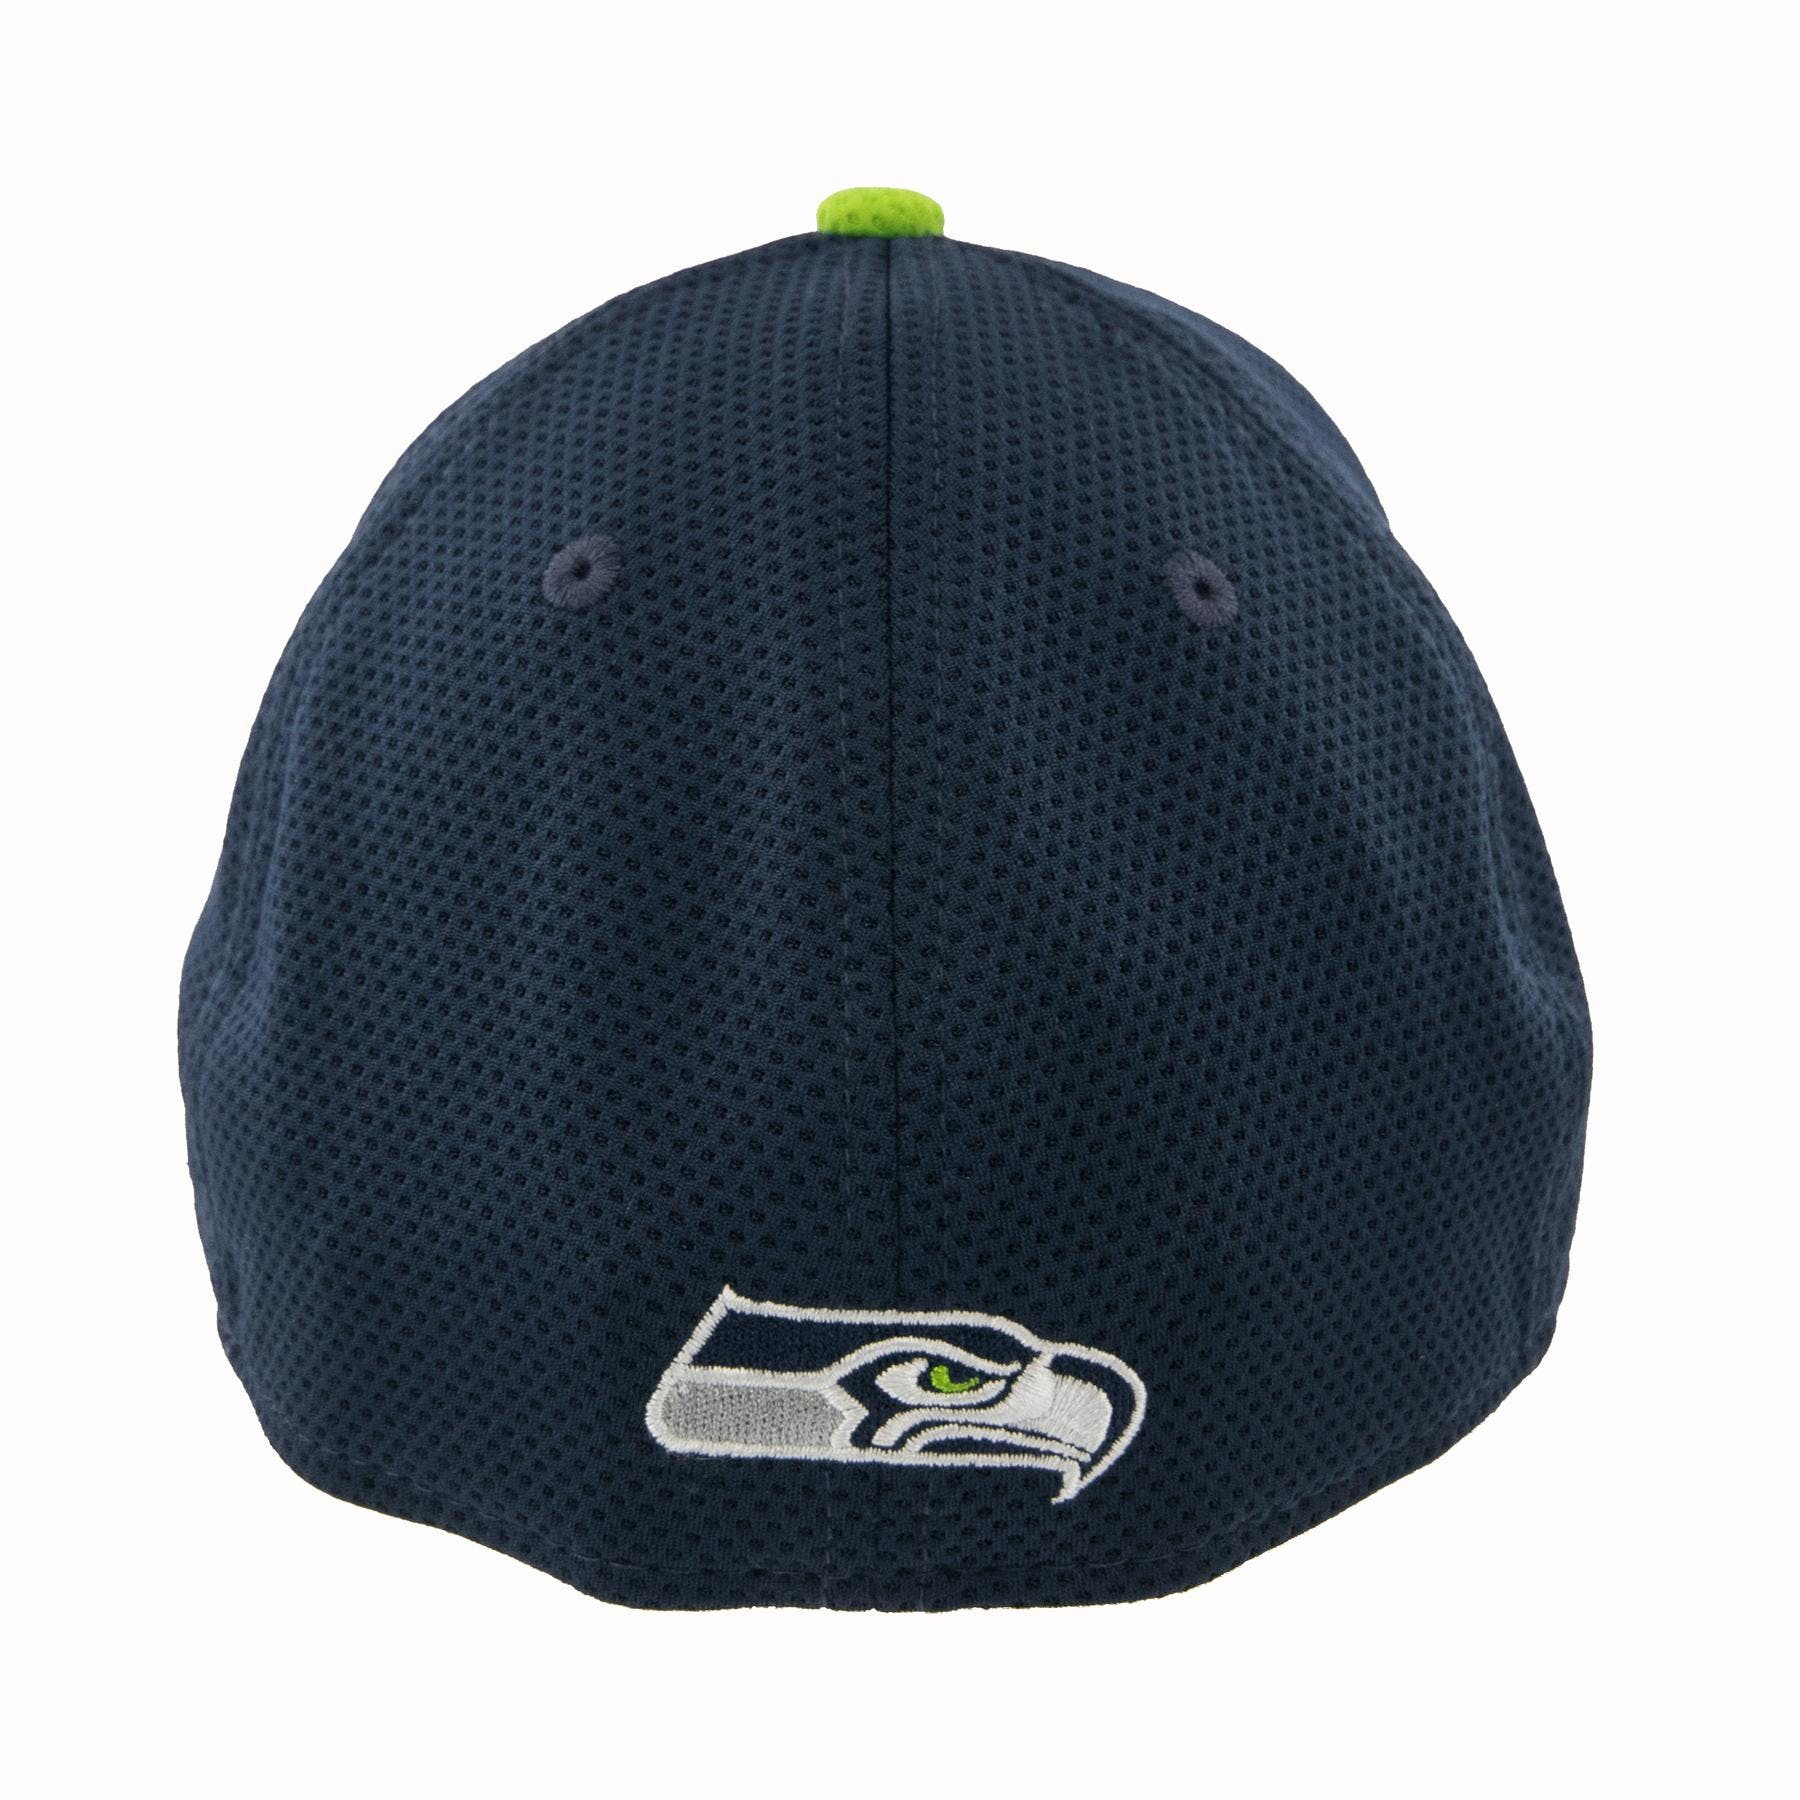 689c1b7fcd2f7 Seattle Seahawks New Era Navy Tech Grade Flex Fit Hat